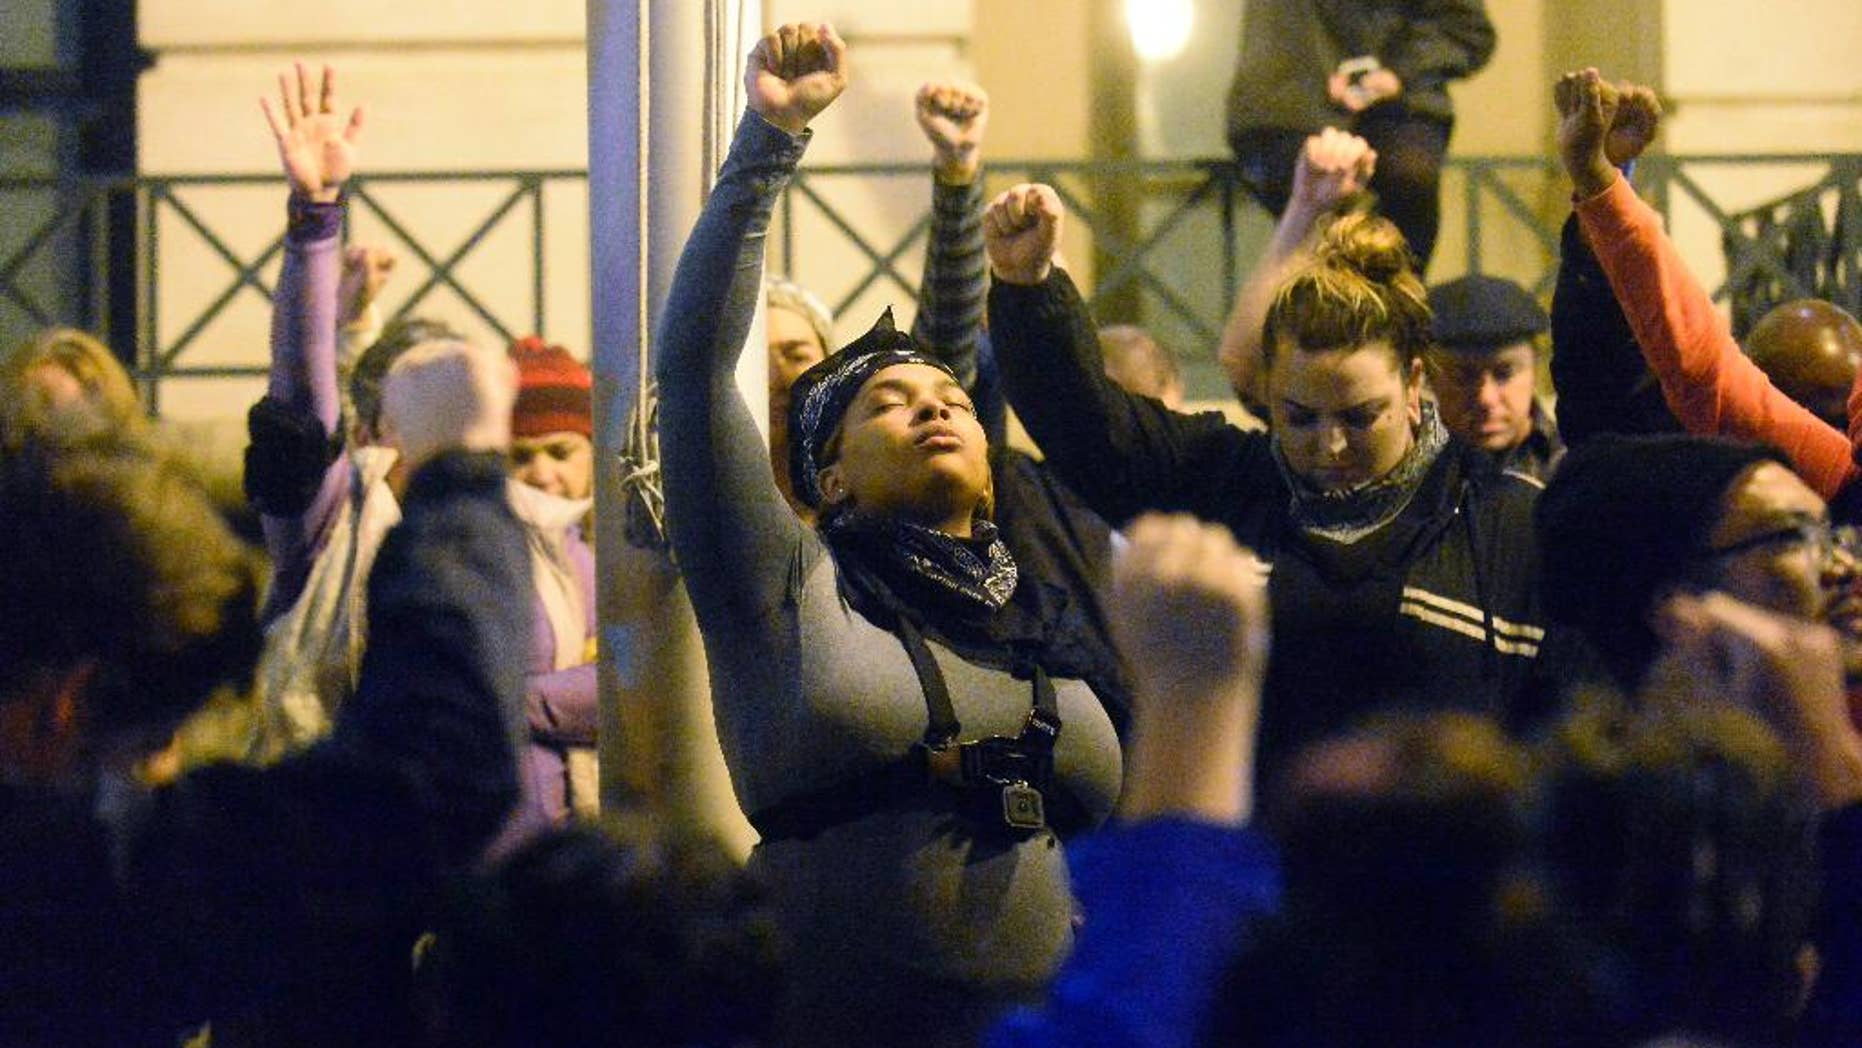 Protesters hold a moment of silence for Keith Lamont Scott in front of Charlotte-Mecklenburg Police Department headquarters, in the aftermath of no indictment being given in the death of Keith Lamont Scott, in Charlotte, N.C., Wednesday, Nov. 30, 2016. A prosecutor has cleared a Charlotte police officer in the killing of a black man whose death touched off civil unrest, and he presented detailed evidence to rebut assertions that the slain man was unarmed. Charlotte-Mecklenburg District Attorney Andrew Murray said Wednesday that Officer Brentley Vinson was justified in opening fire on Scott and won't face charges. (David T. Foster III/The Charlotte Observer via AP)